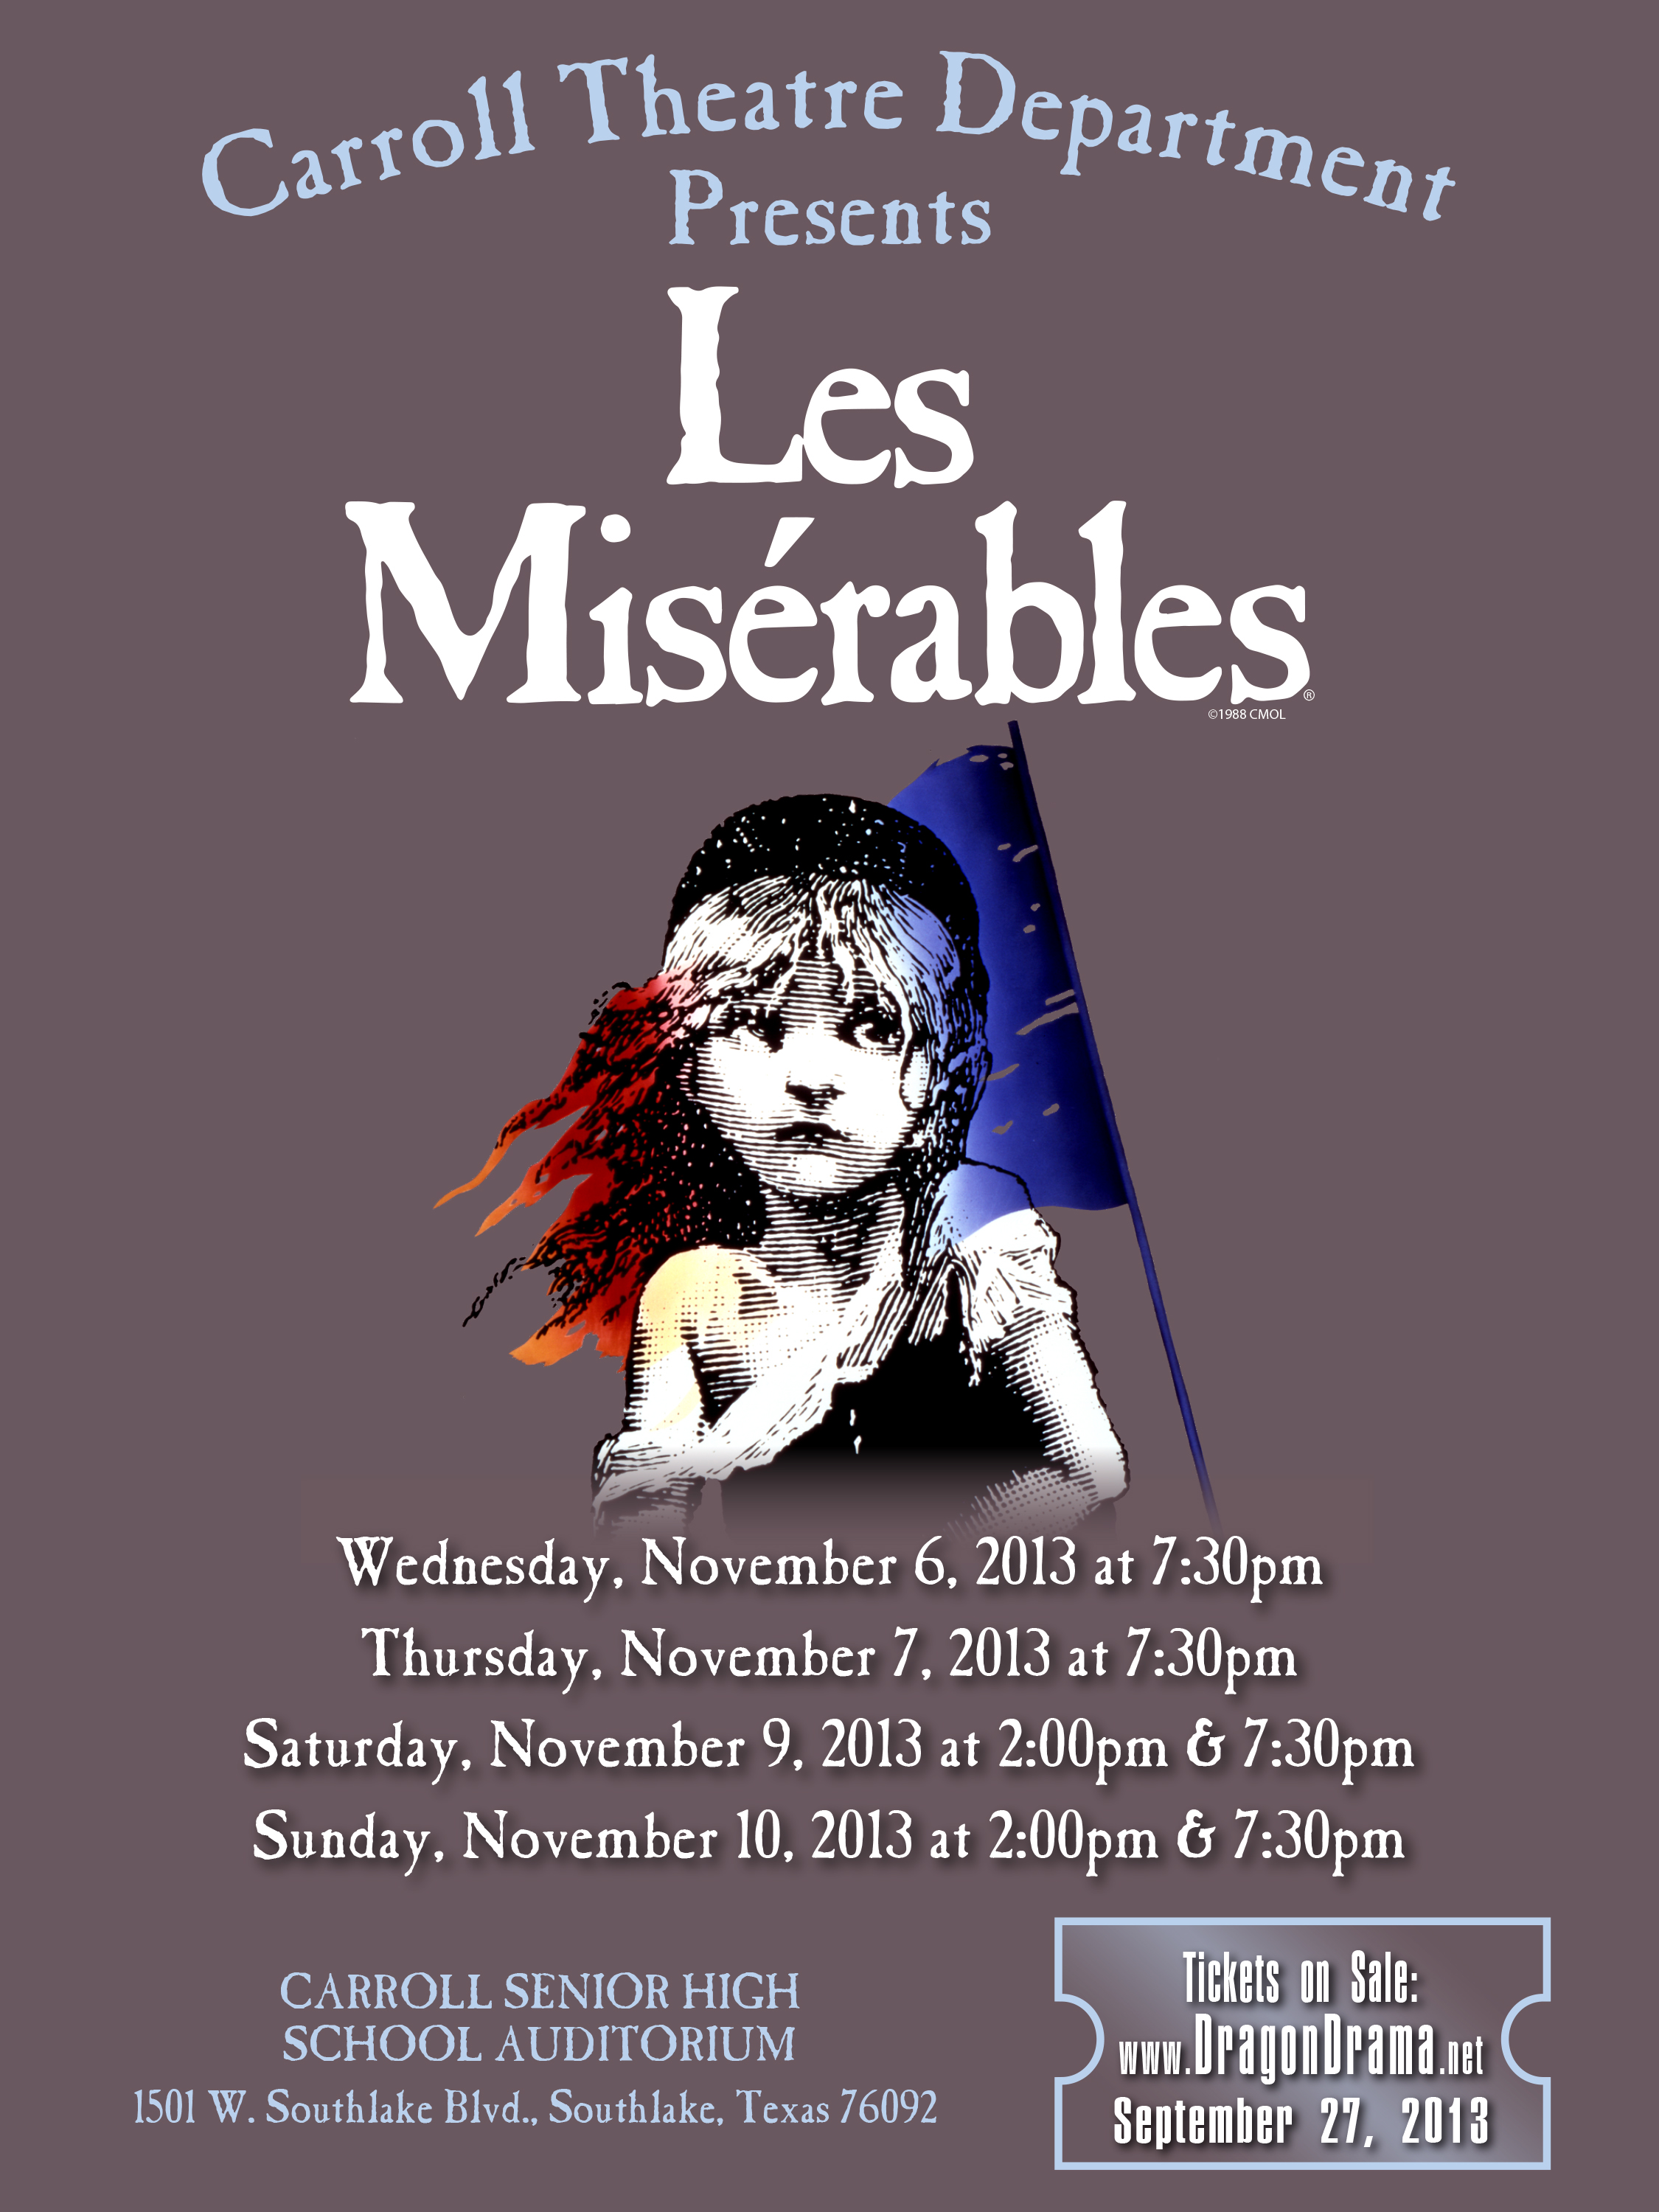 12987-CarrollTheatre-LesMiserables